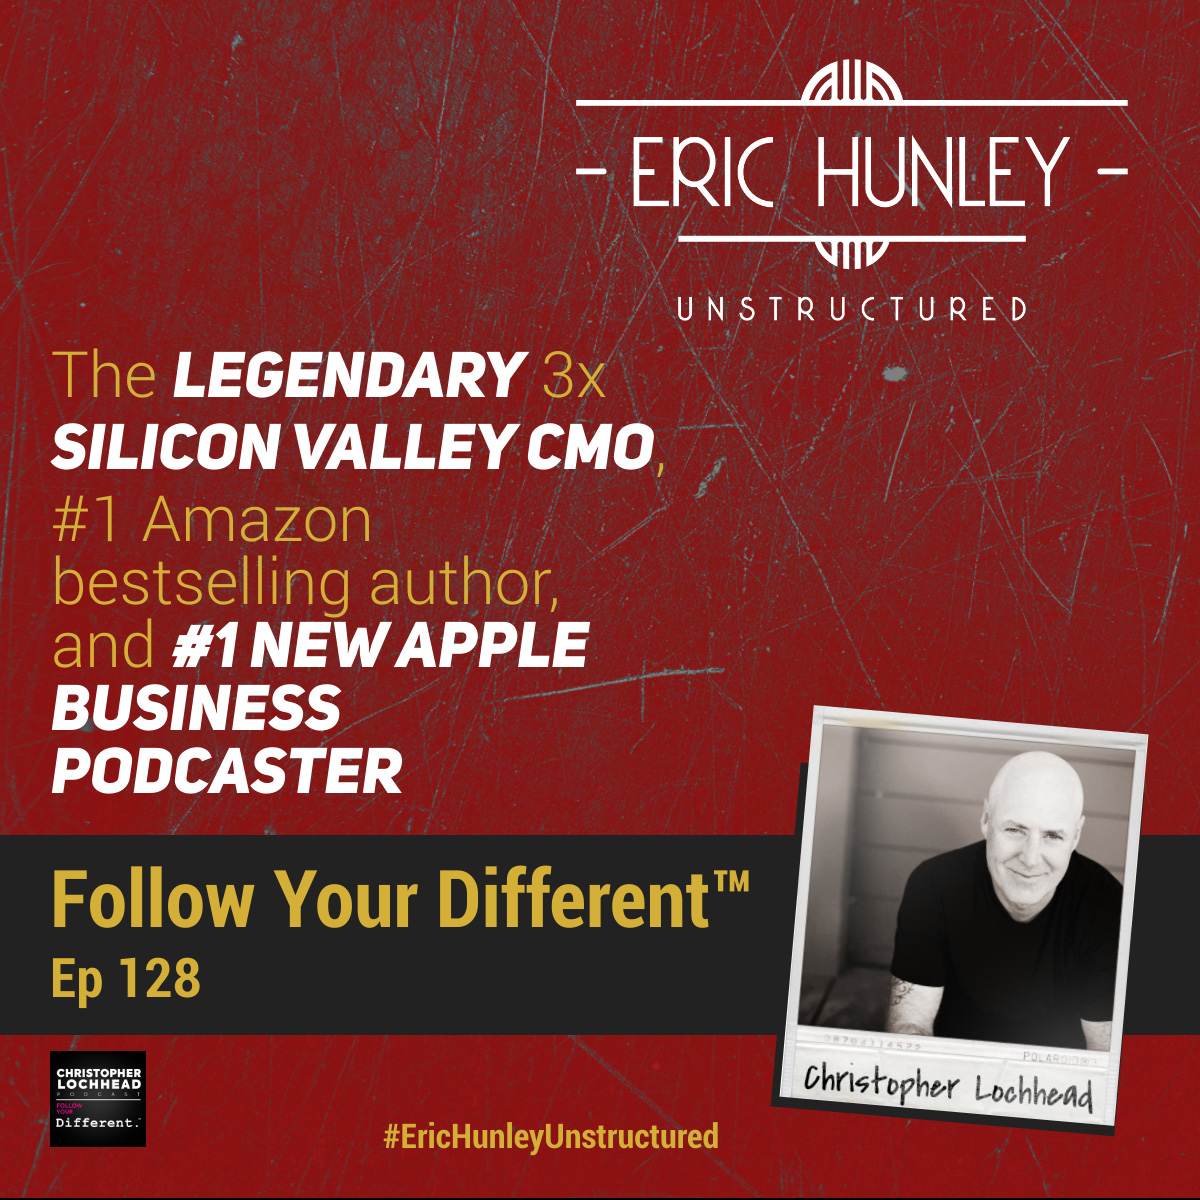 Eric Hunley Unstructured Podcast - 128 Christopher Lochhead Square Post